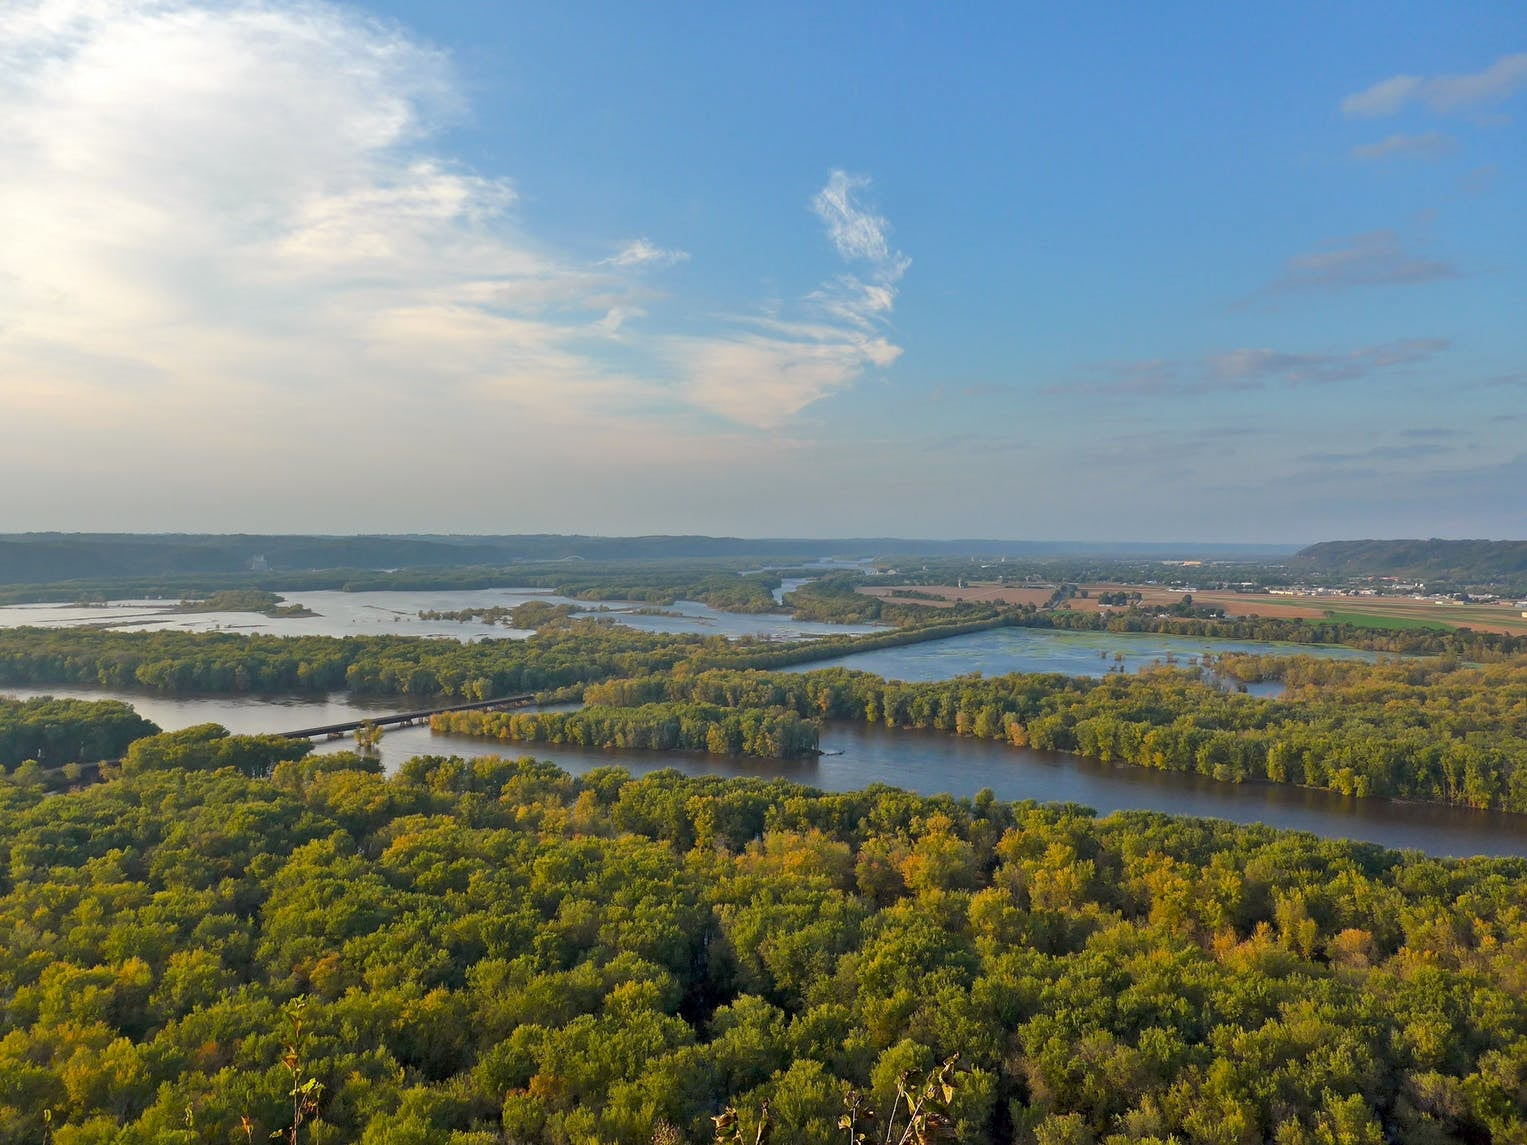 View overlooking lakes surrounded by forests under a blue sky.